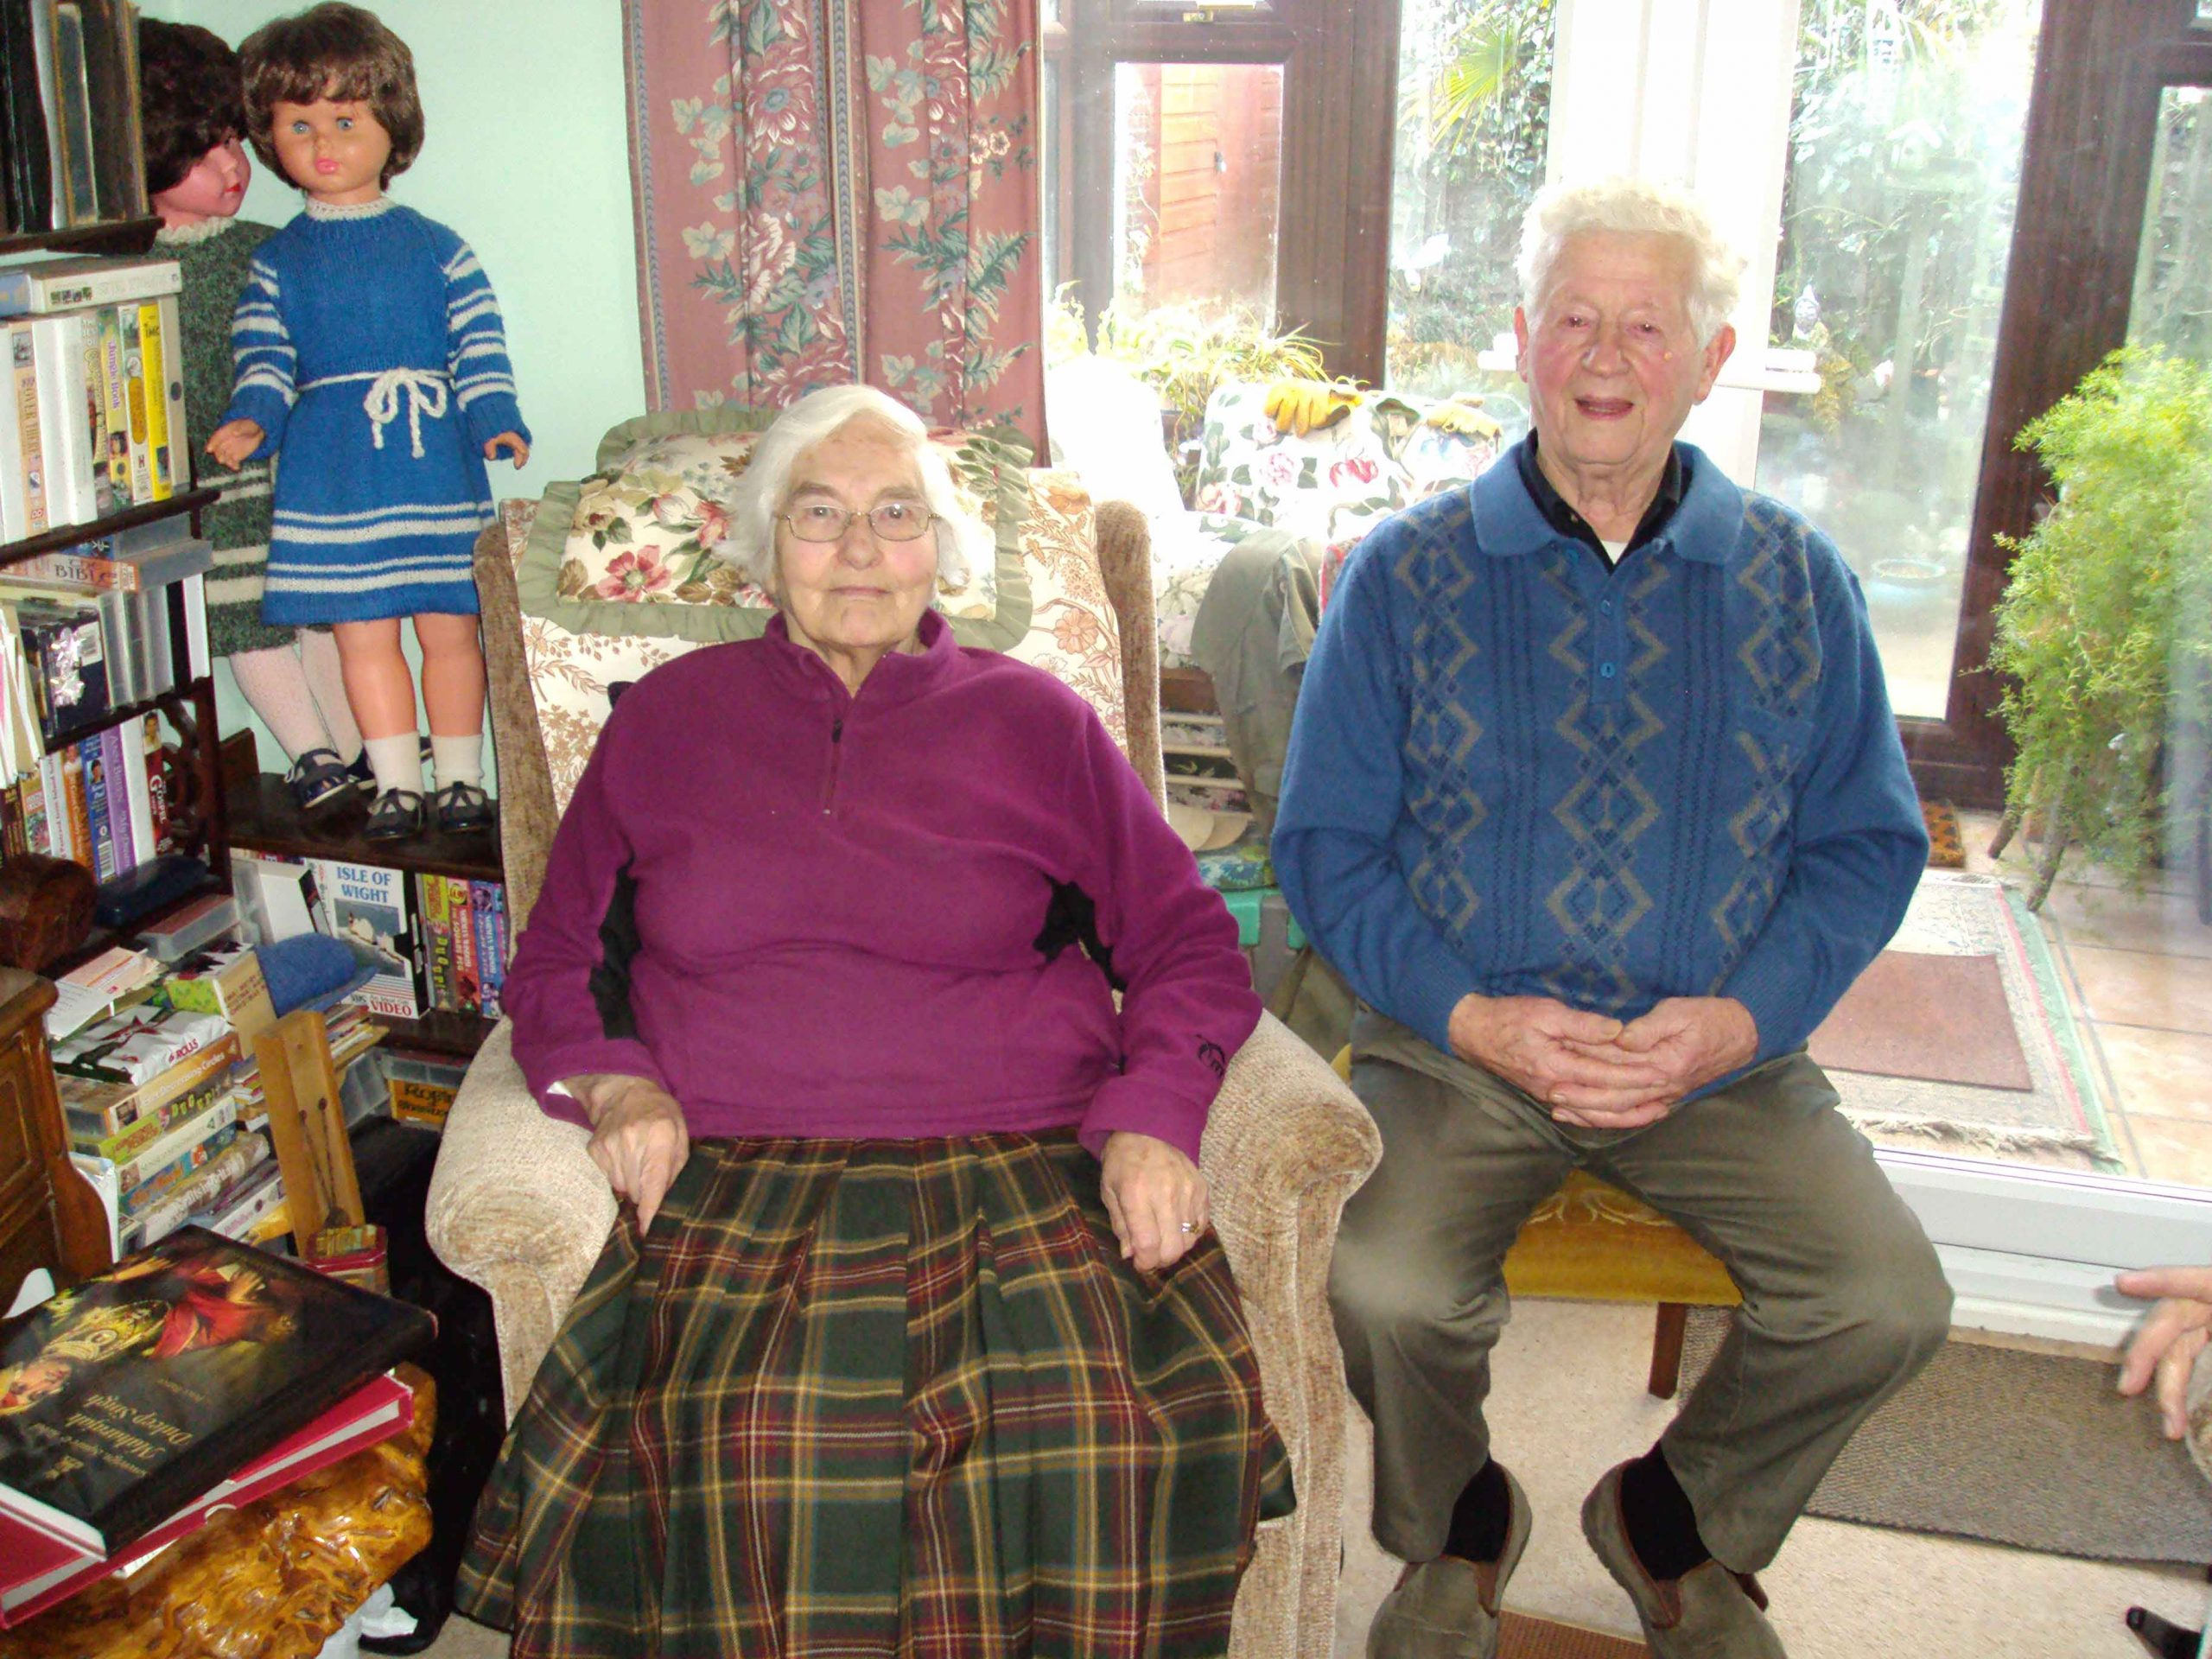 Doris & Oscar Kettle in 2011, ex- residents of Blo Norton who recalled the Princesses in the village